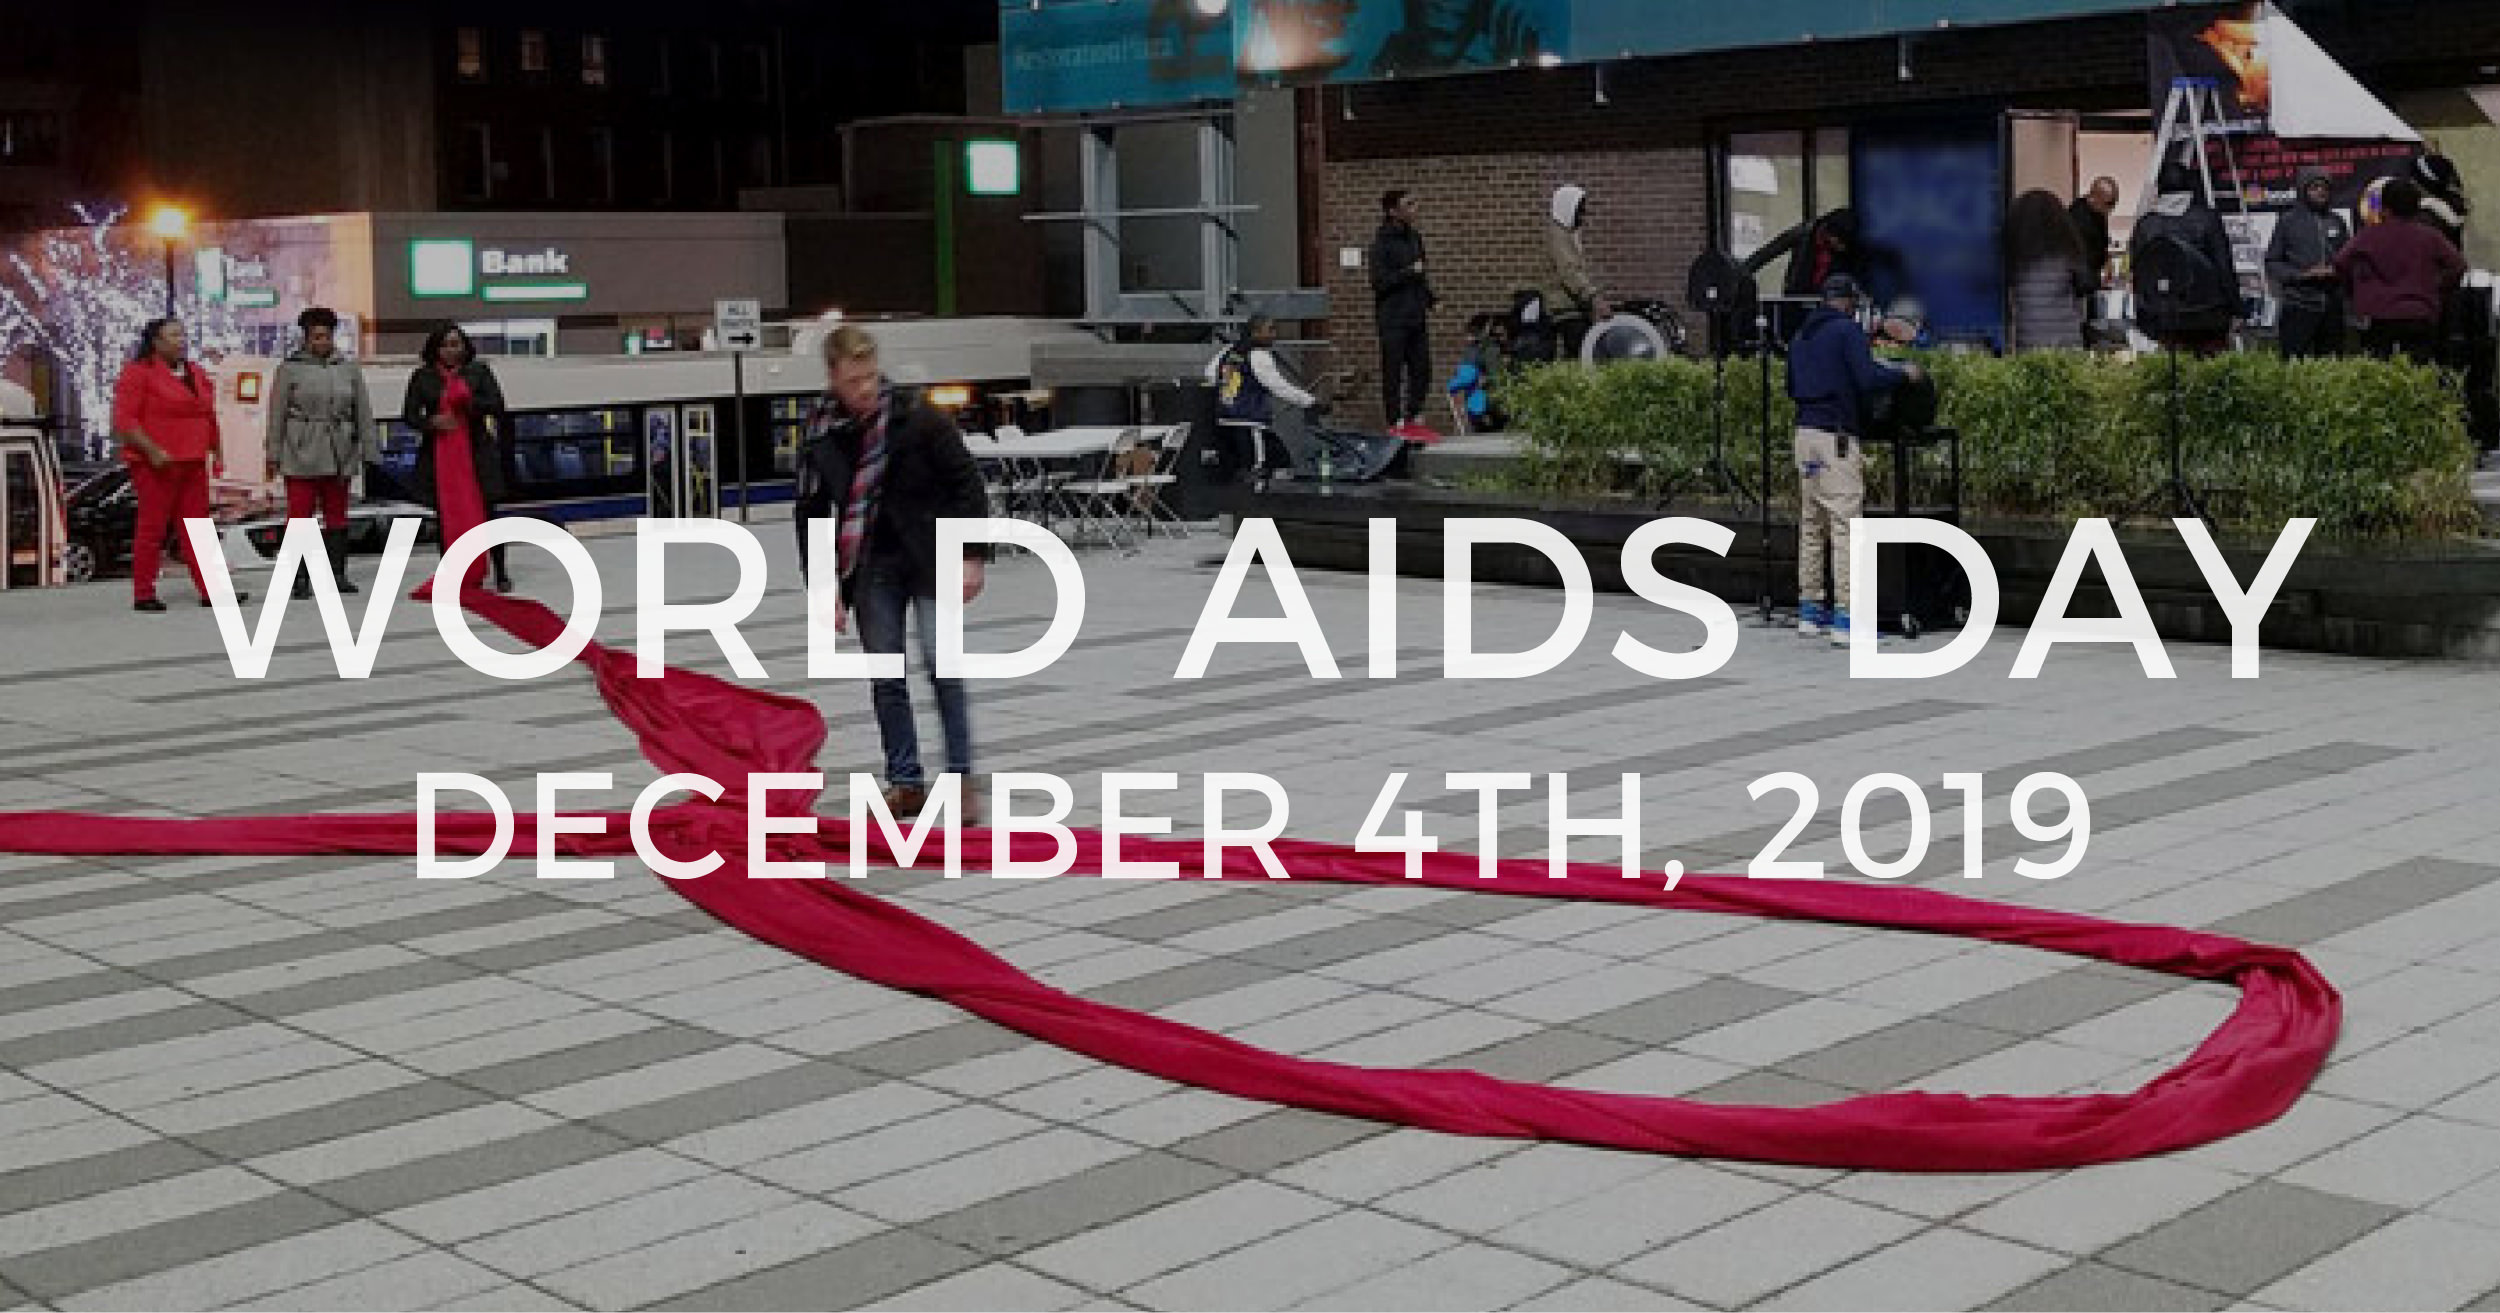 World AIDS Day Annual Candlelight Vigil at Brooklyn Community Pride Center